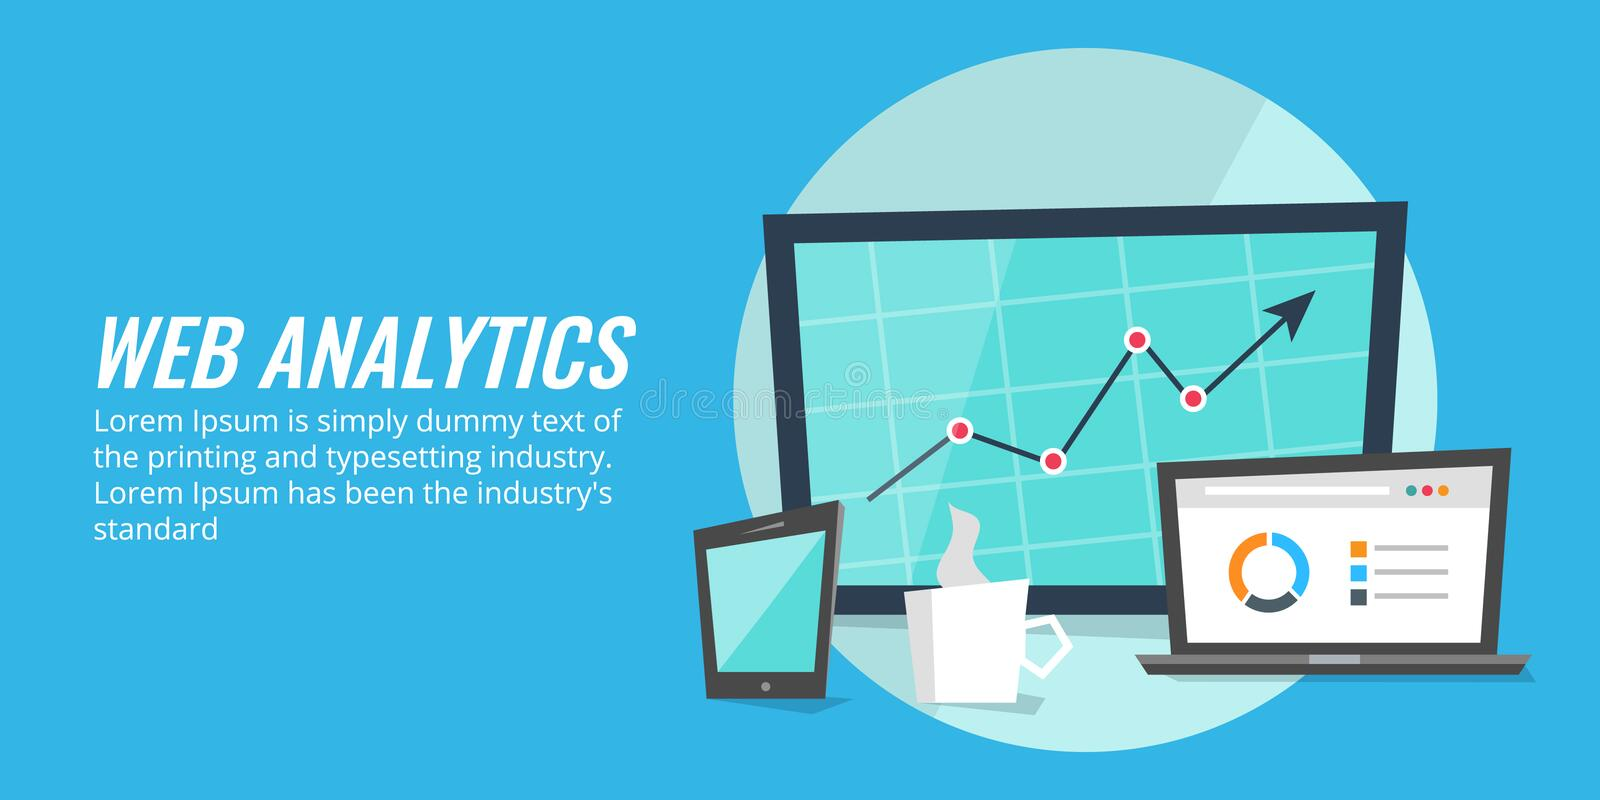 Website report analysis on digital devices. Web analytics, data, information concept. Concept of website data analysis. Marketing performance insights showing vector illustration